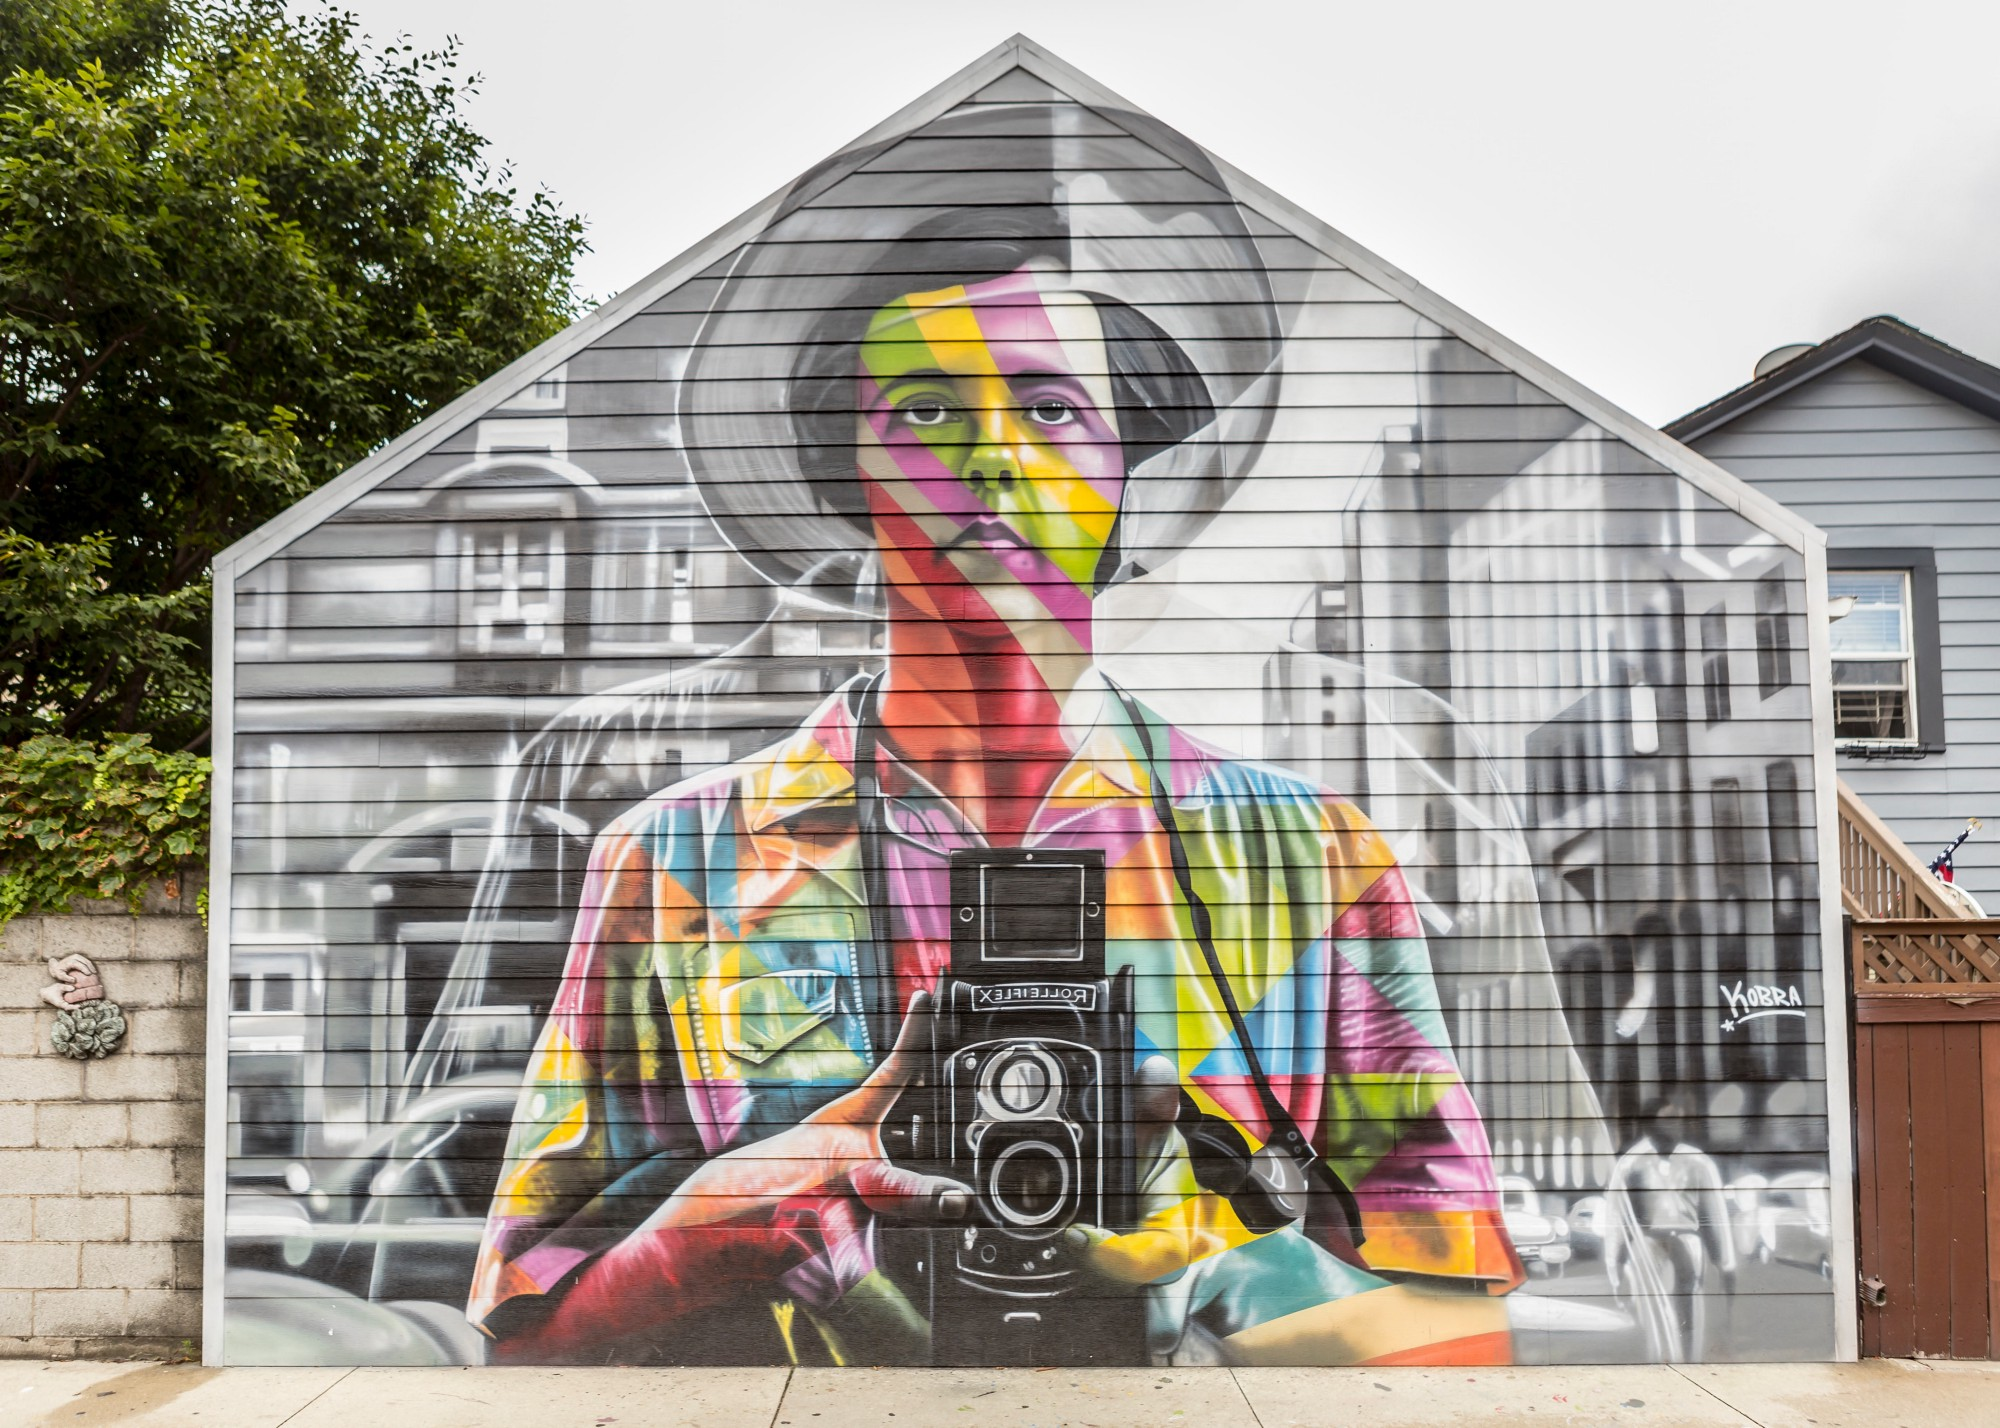 A mural of a person holding a camera.